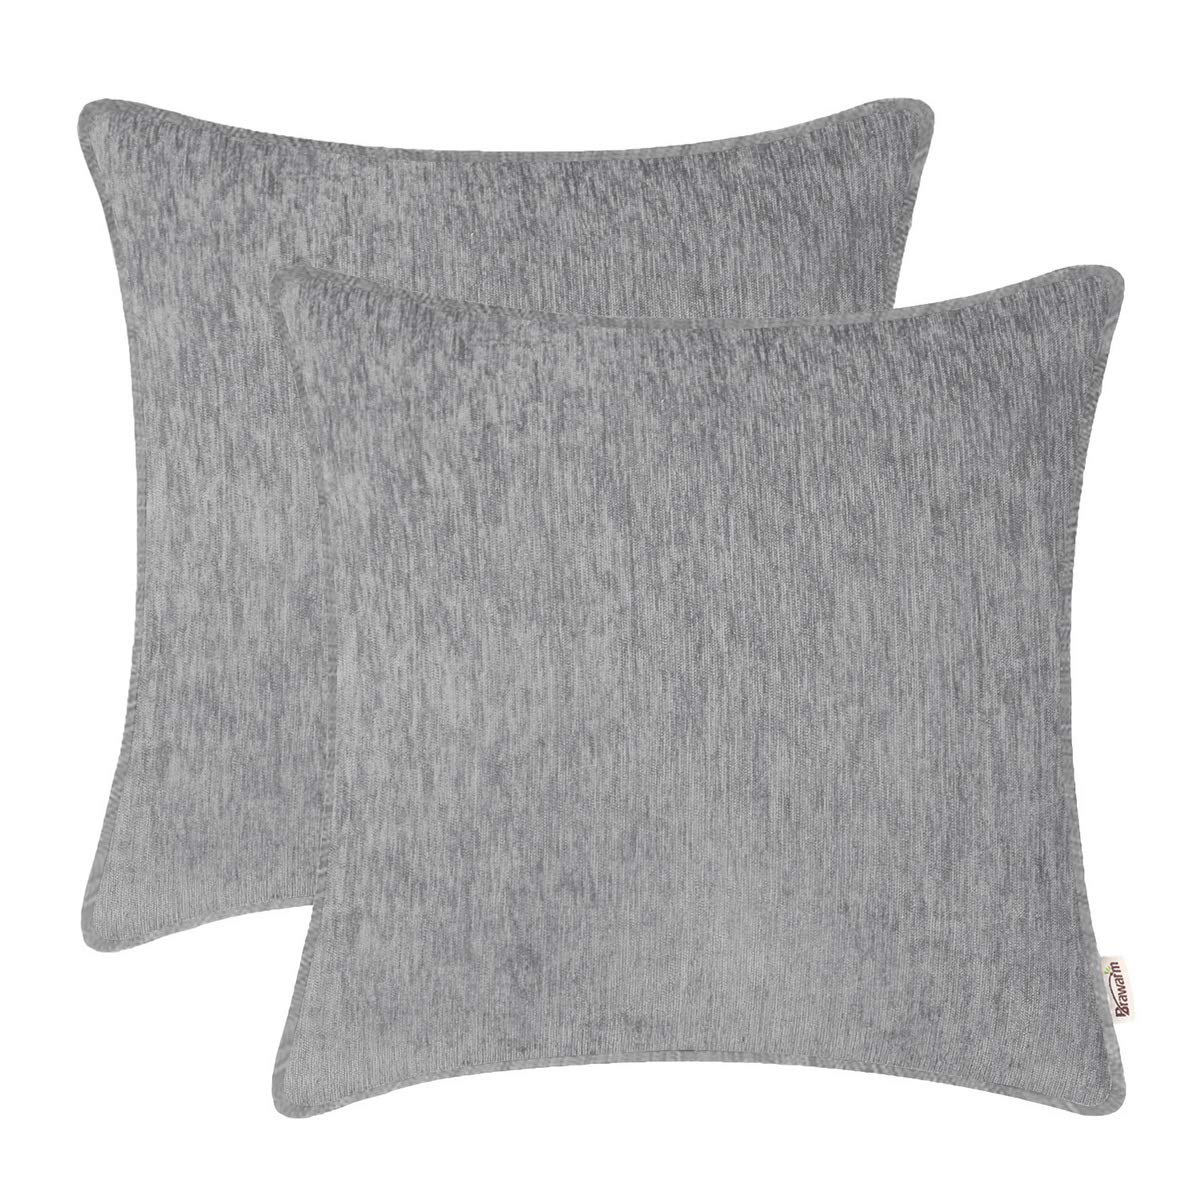 BRAWARM Pack of 2 Cozy Throw Pillow Covers Cases for Sofa Couch Home Decoration Solid Dyed Striped Soft Chenille with Piping 22 X 22 Inches Neutral Gray